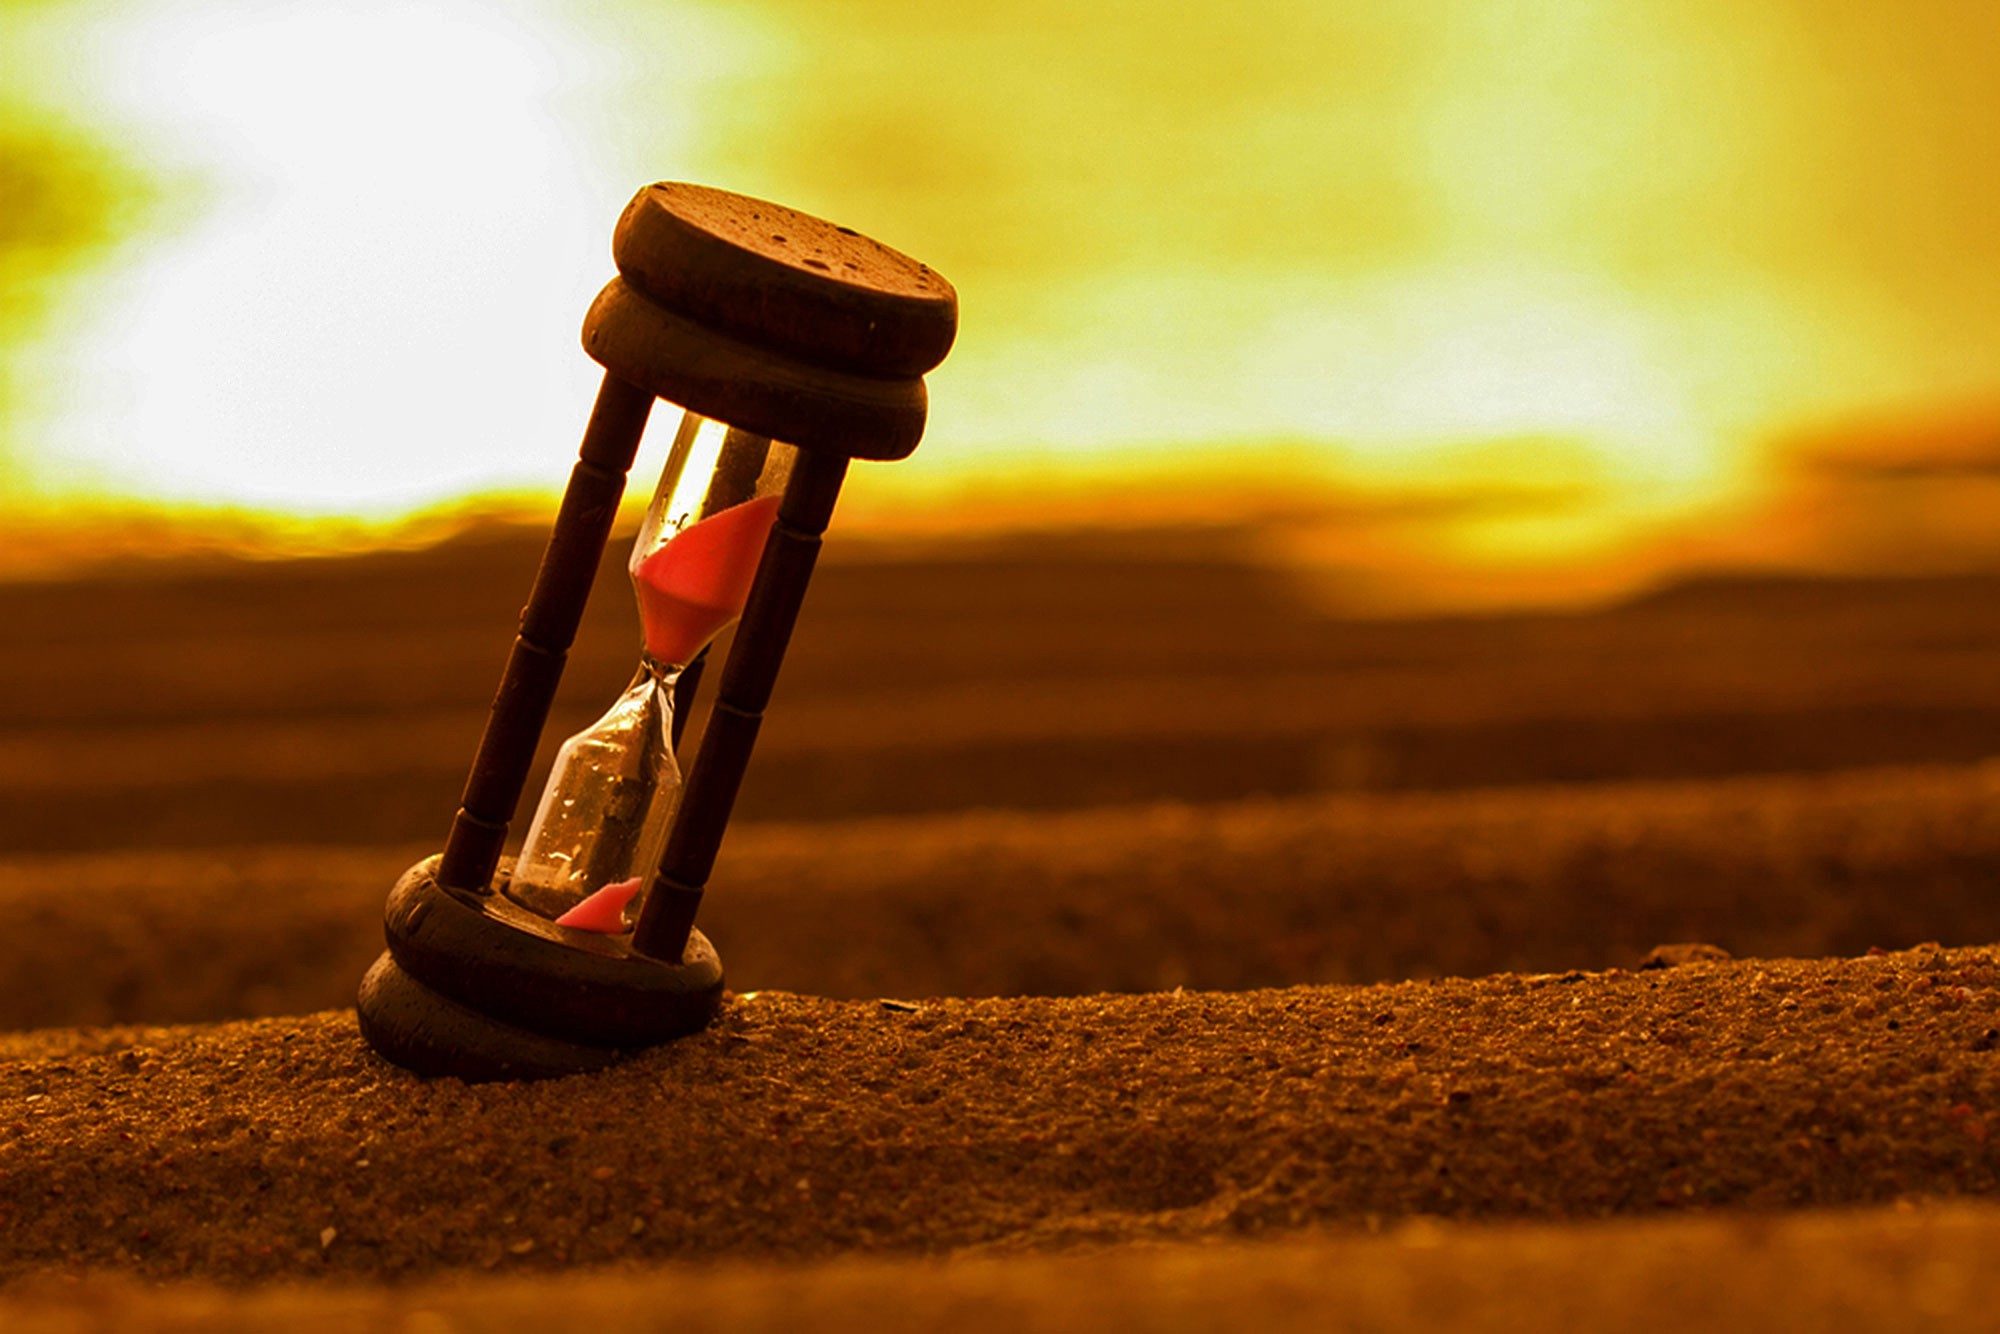 Image of a hourglass sand timer sitting on sand (maybe a beach)